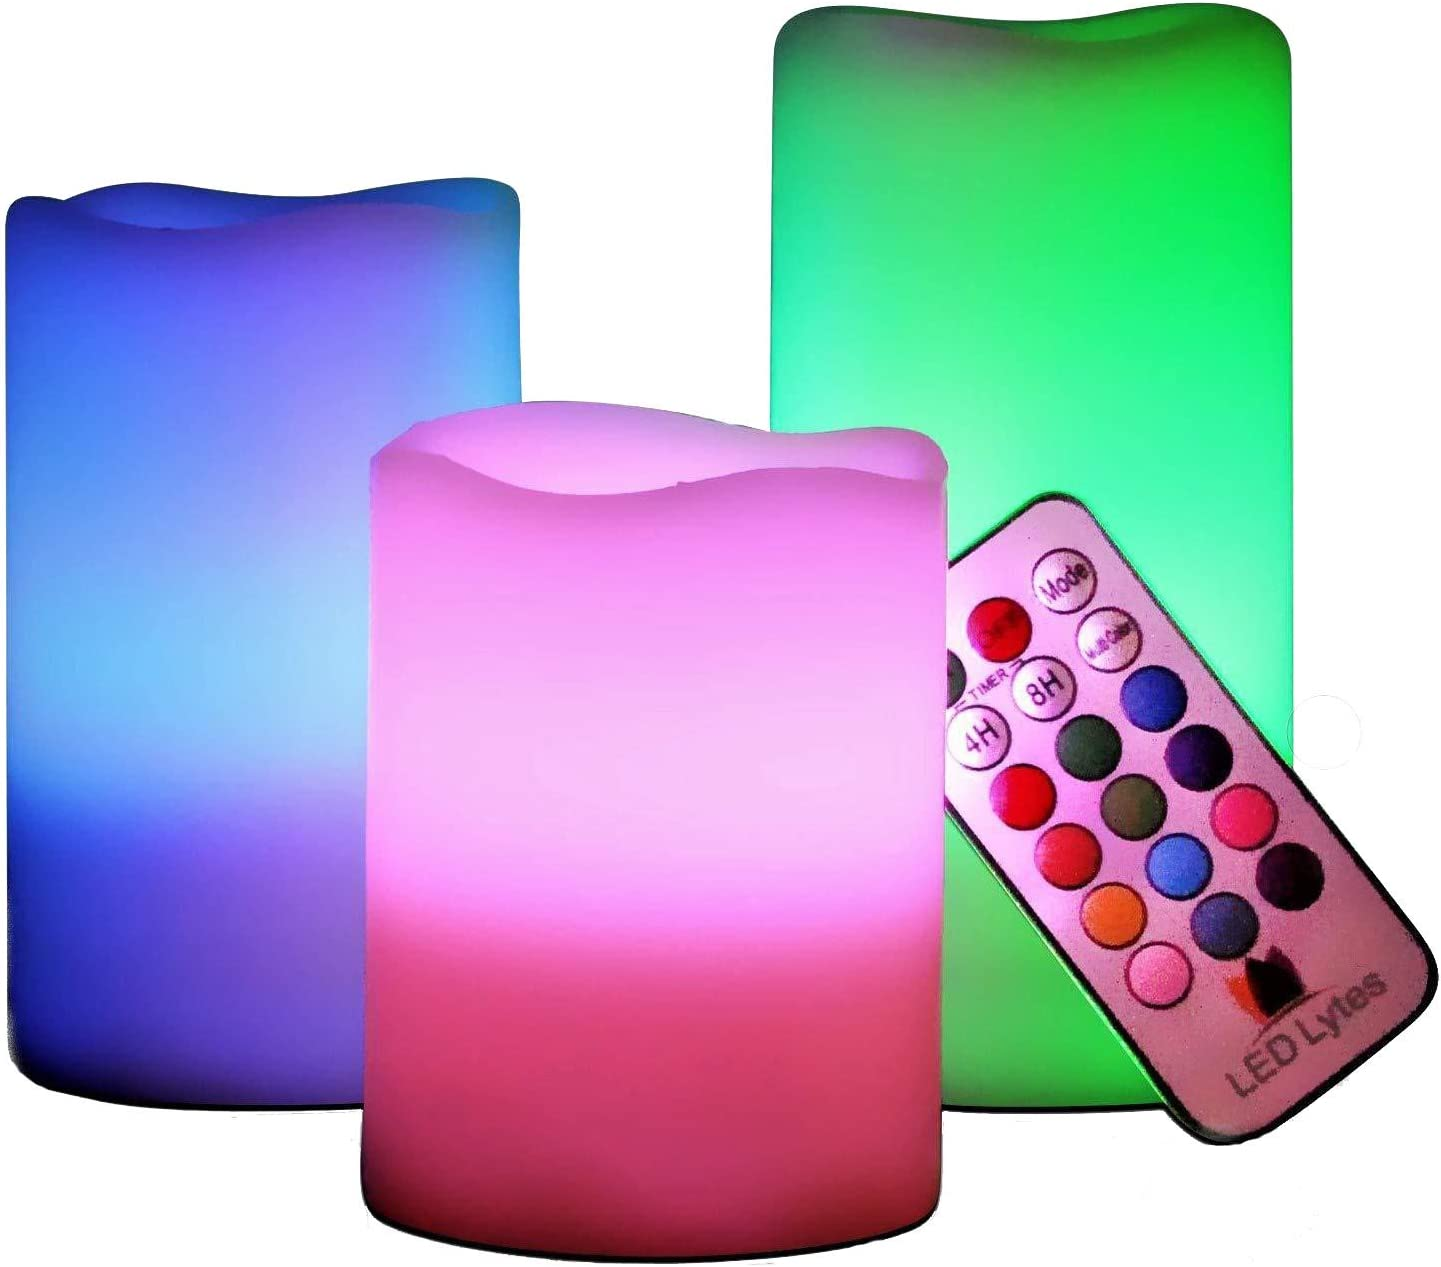 AESTHING Multi Colored Set of 3 Flickering Wax Flameless LED Pillar Candles with Remote Control-Battery Operated Pillar Candles – 7 Color Changing Candles for Home Decoration